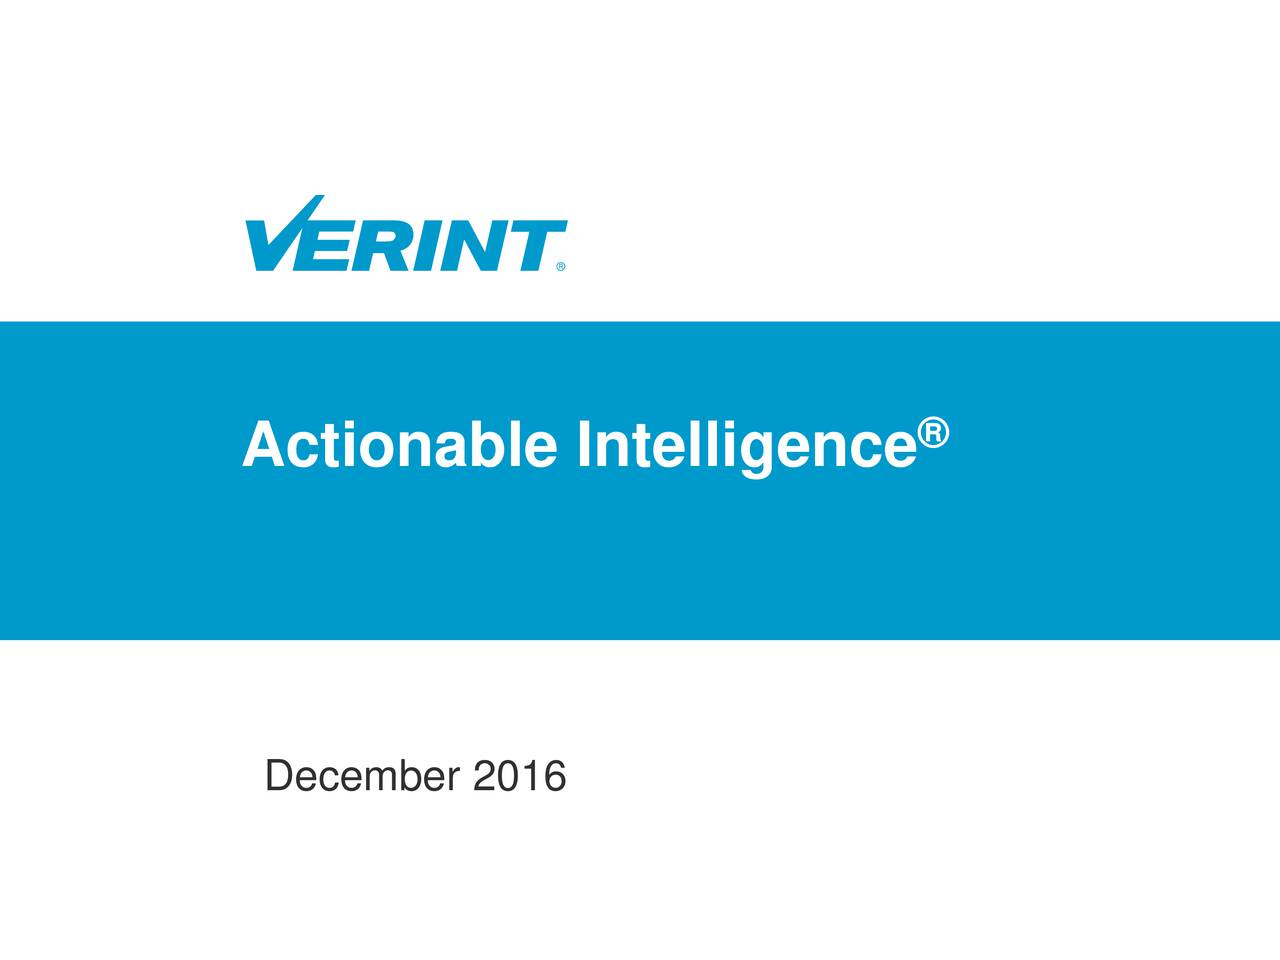 Actionable Intelligence December 2016 2016 Verint Systems Inc. All Rights Reserved Worldwide.